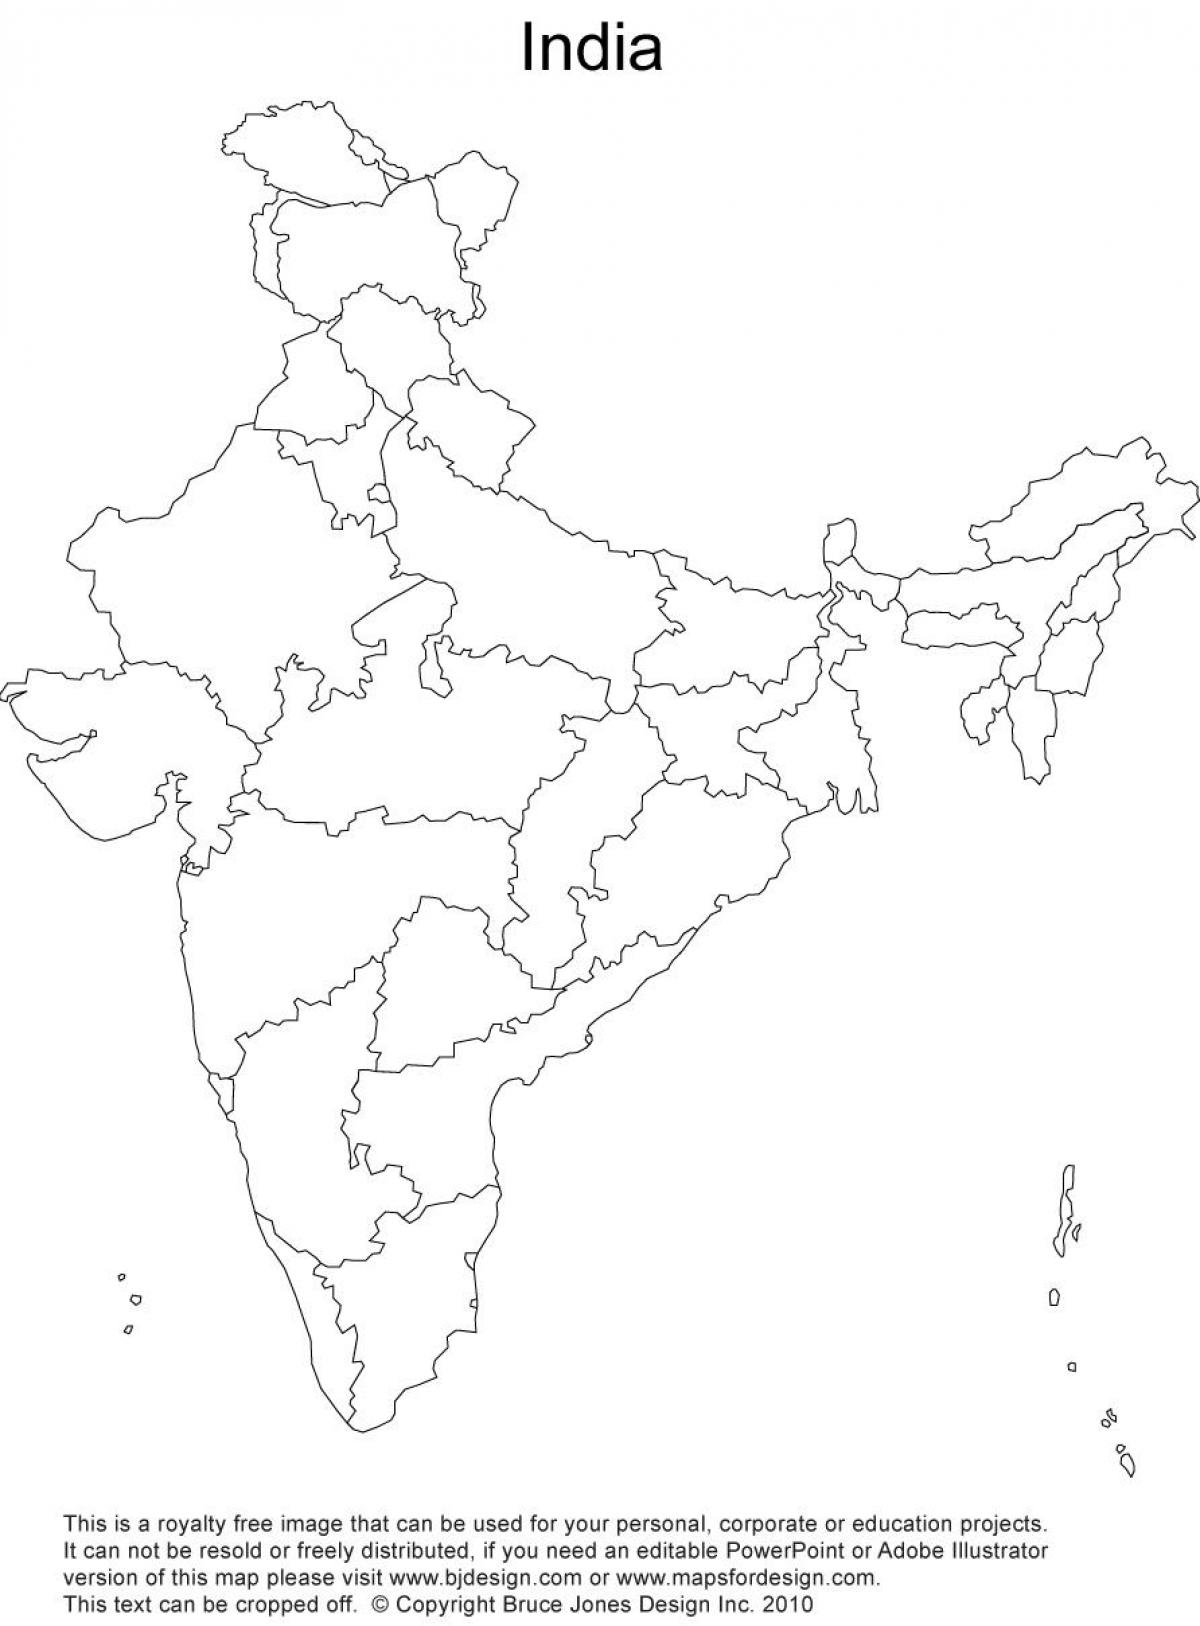 India political map outline - India political outline map (Southern on india capital map, india country map, india map with latitude and longitude, india map states, india physical map mountains, russia map outline, india map with cities, georgia state outline,